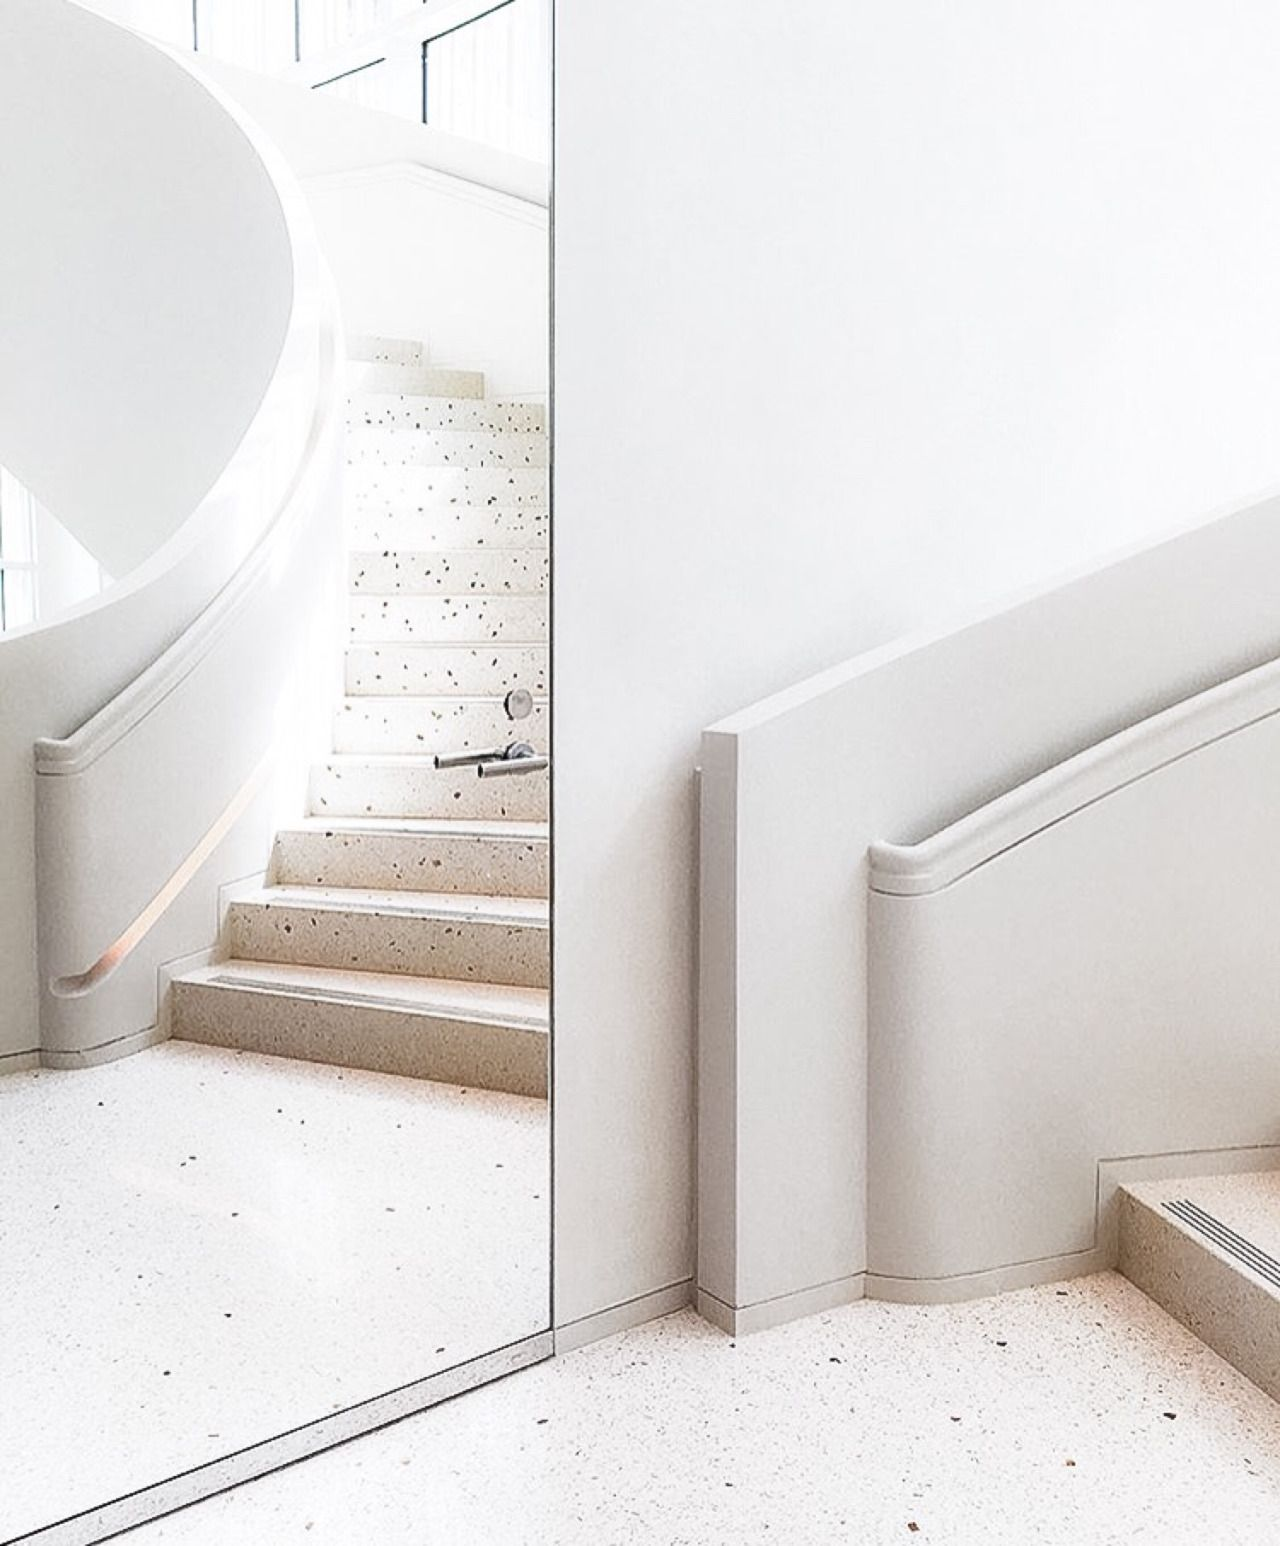 Absolutely Beautiful Sweeping Staircase Inside Hermes Store In Miami    Mirrored Door U0026 Integrated Stair Rail